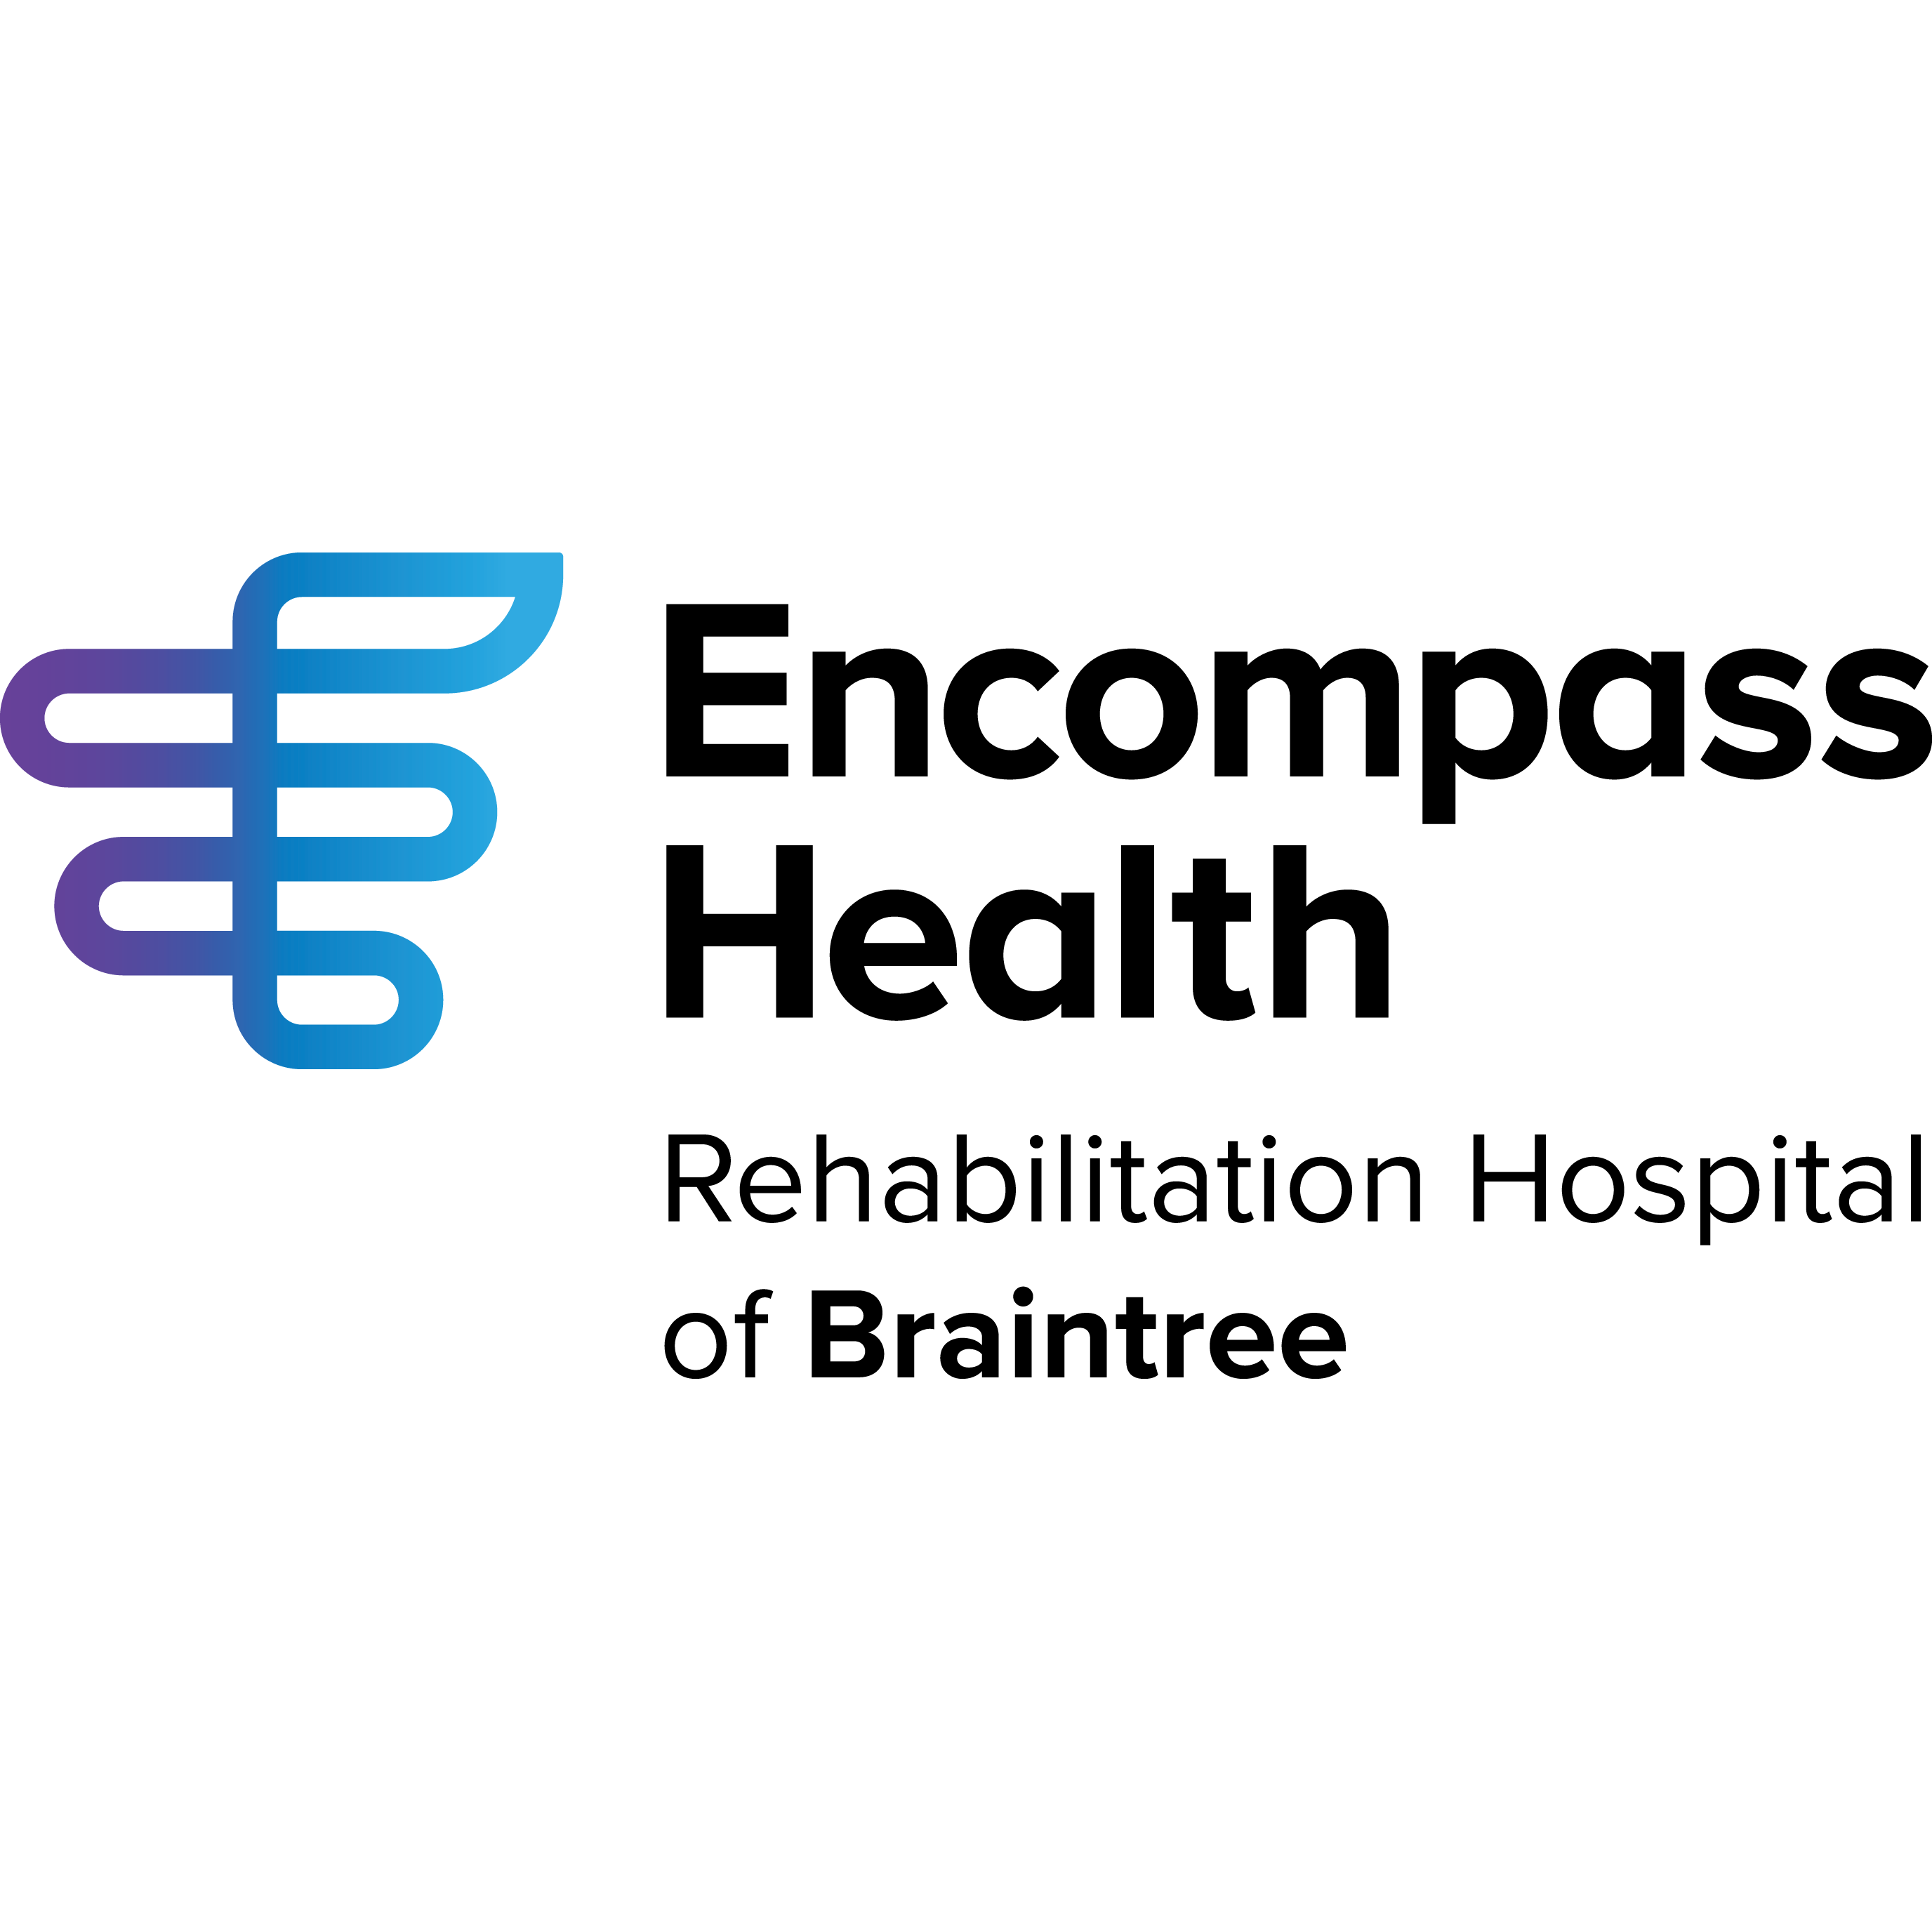 Encompass Health Rehabilitation Hospital of Braintree